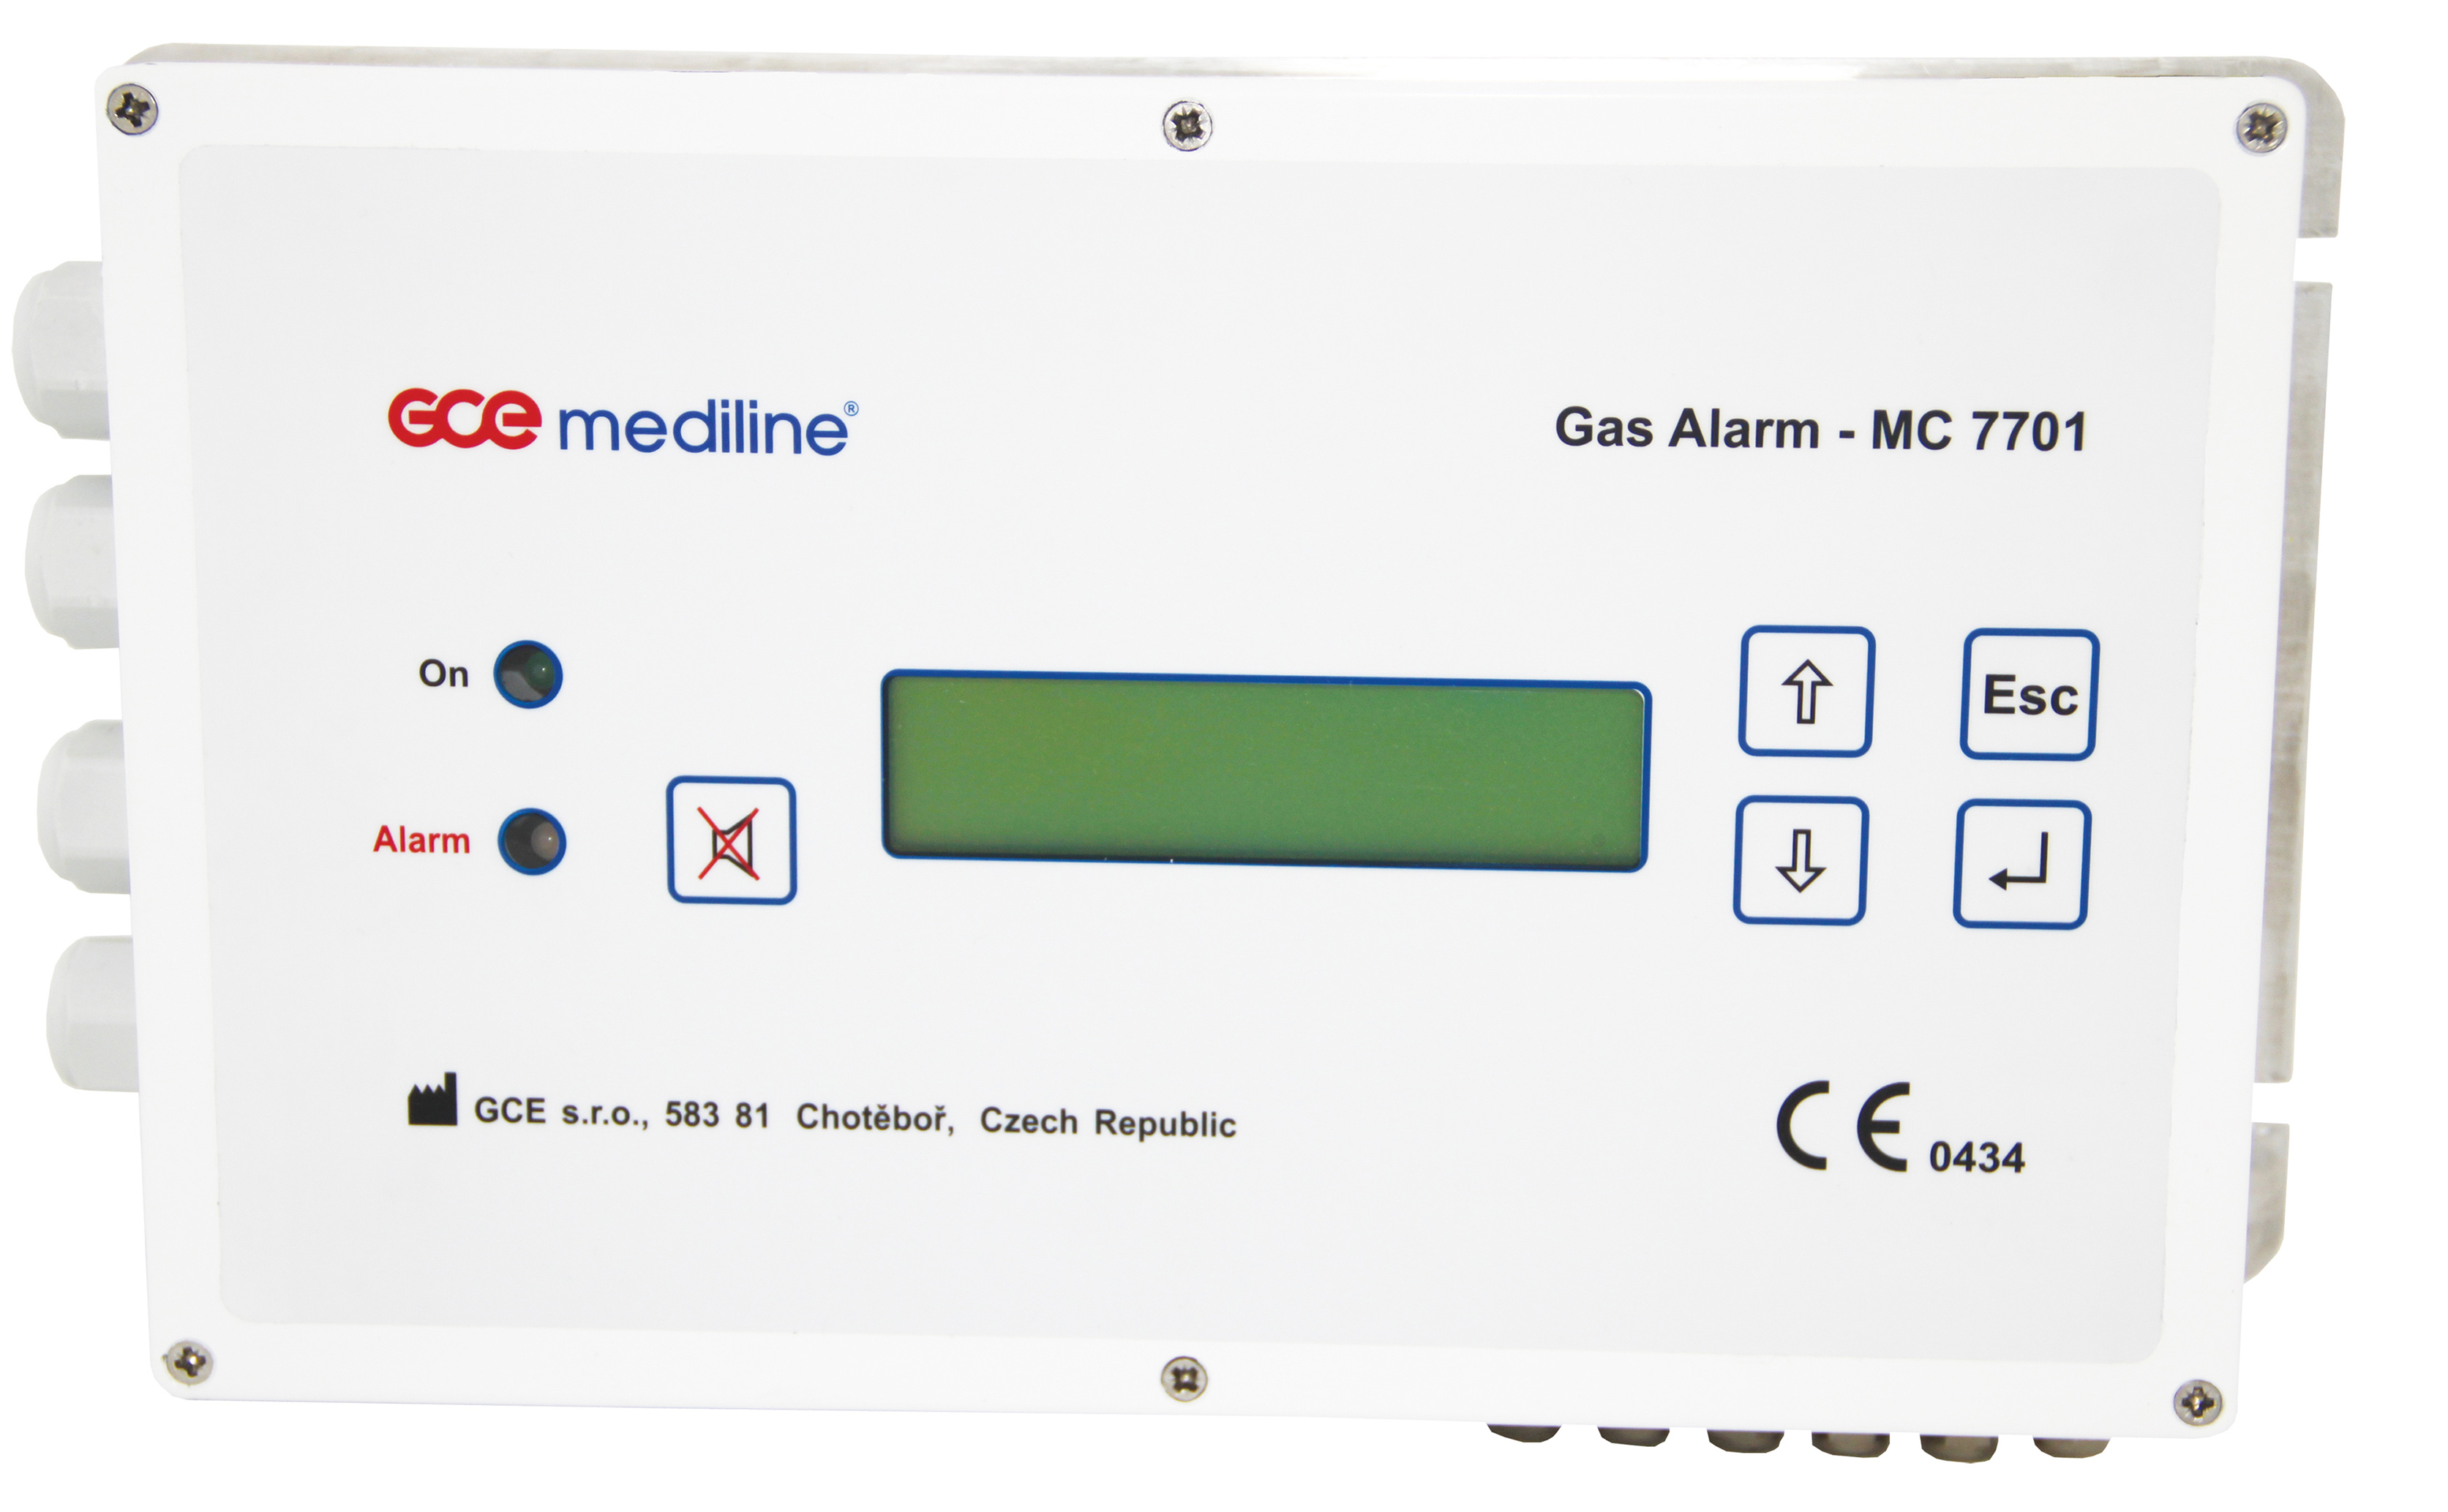 GAS ALARM MC7701 page image